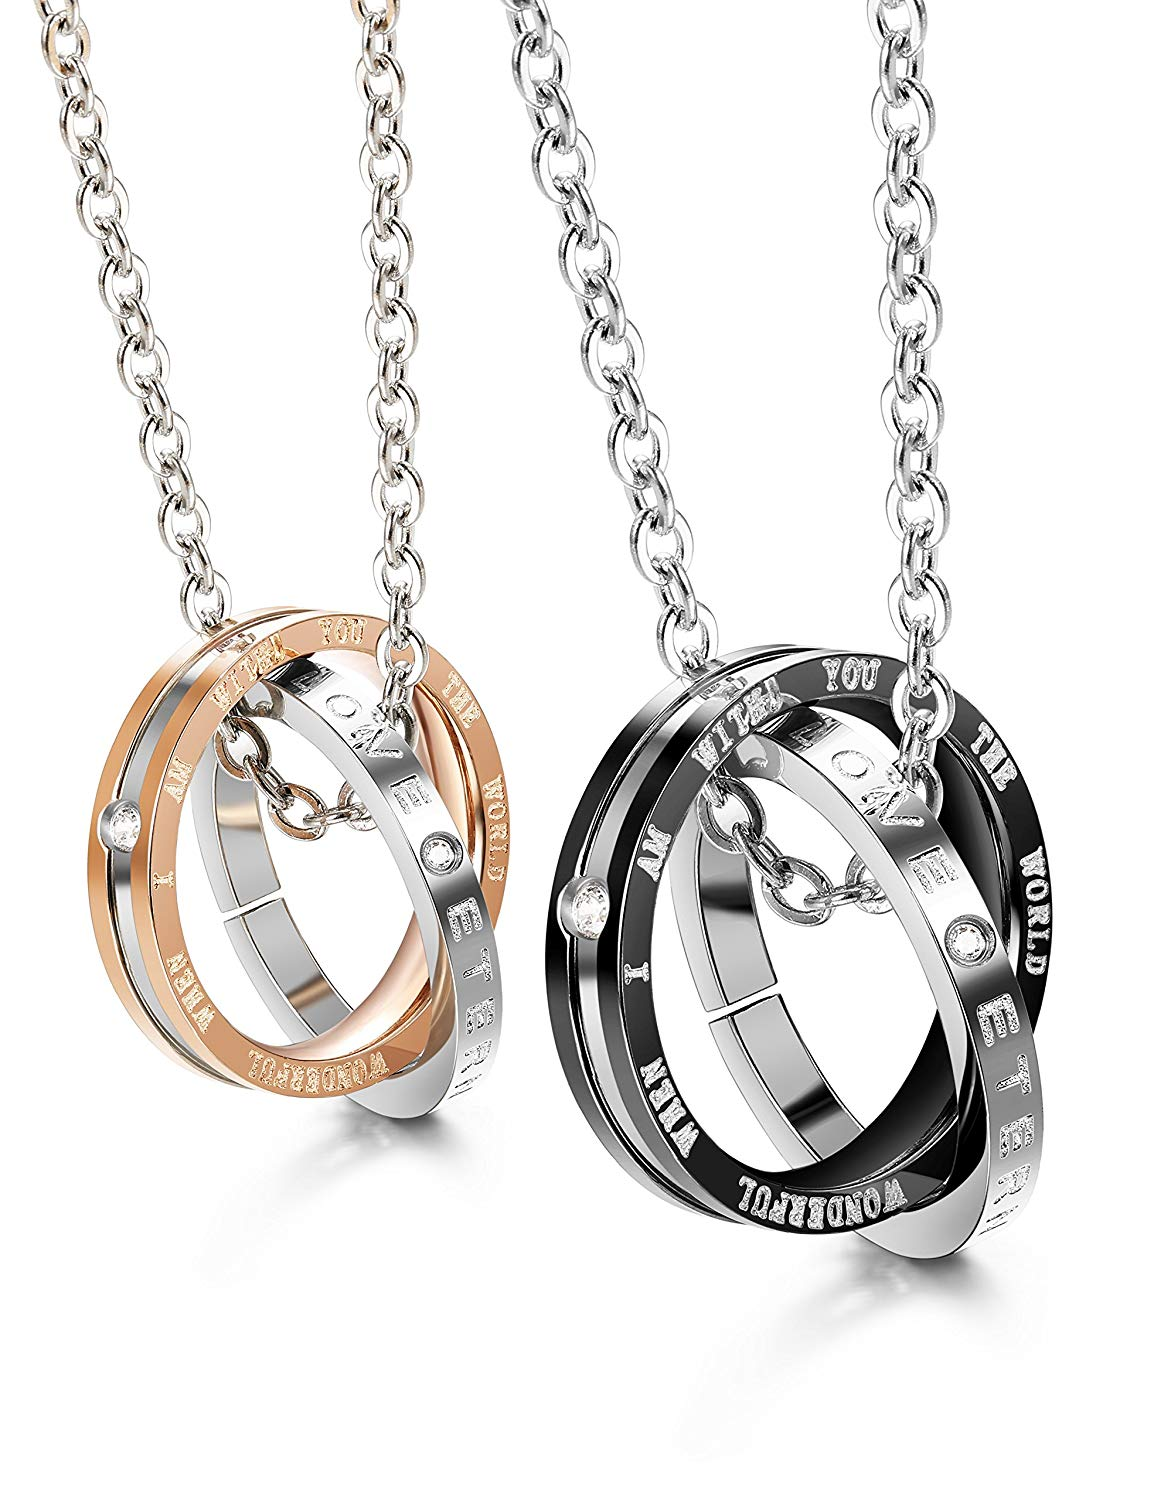 b967bd31cd Get Quotations · Finrezio Matching Set Couples Necklace for Him&Her Korean  Ring Pendant Necklace Jewelry Made of Stainless Steel